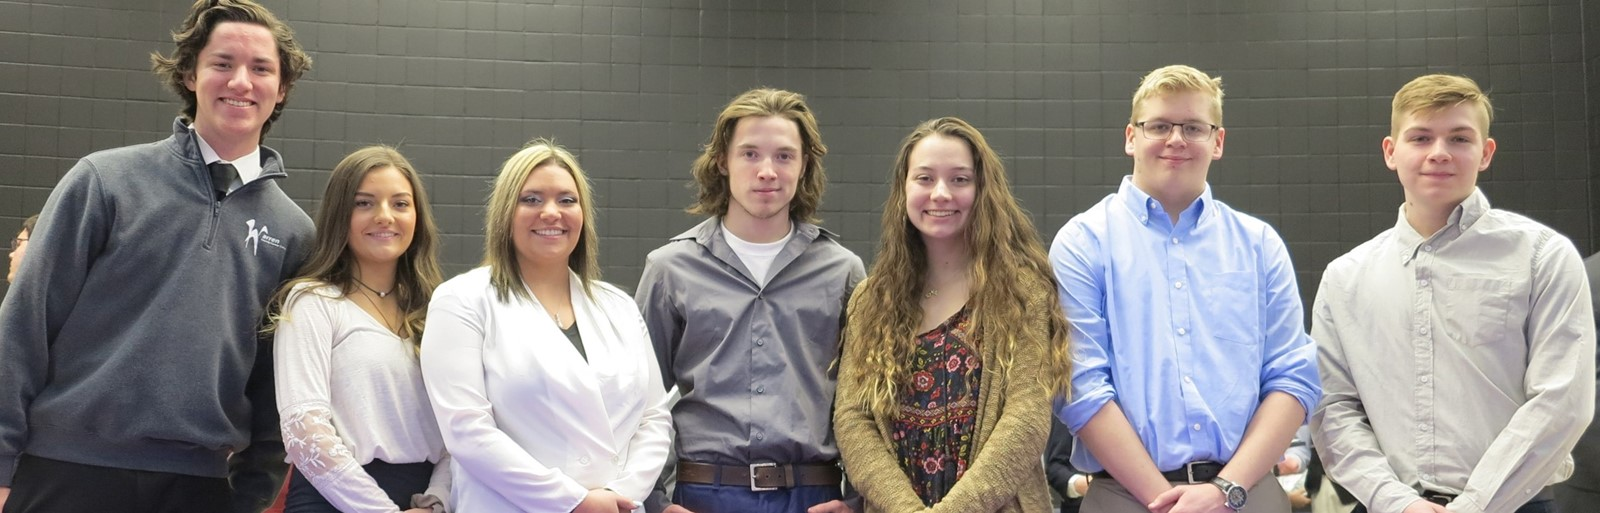 National Technical Honor Society officers